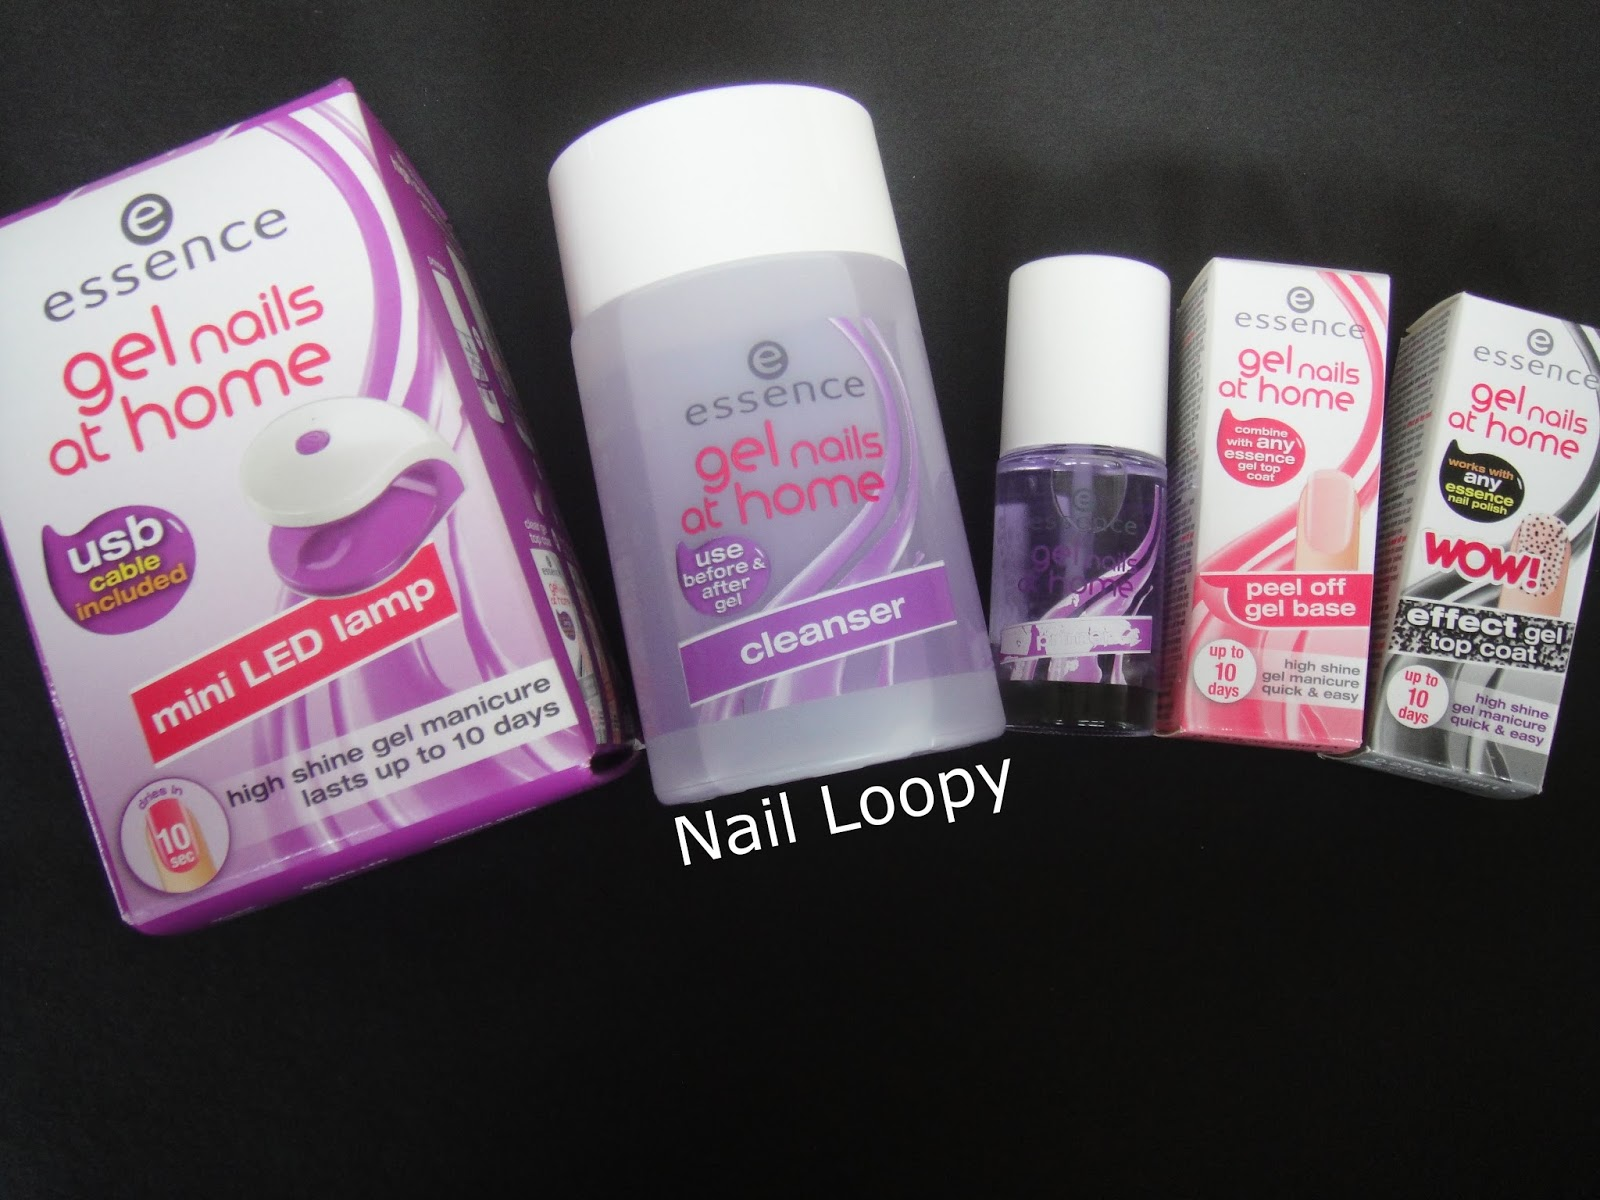 nail loopy essence gel nails at home tutorial review. Black Bedroom Furniture Sets. Home Design Ideas